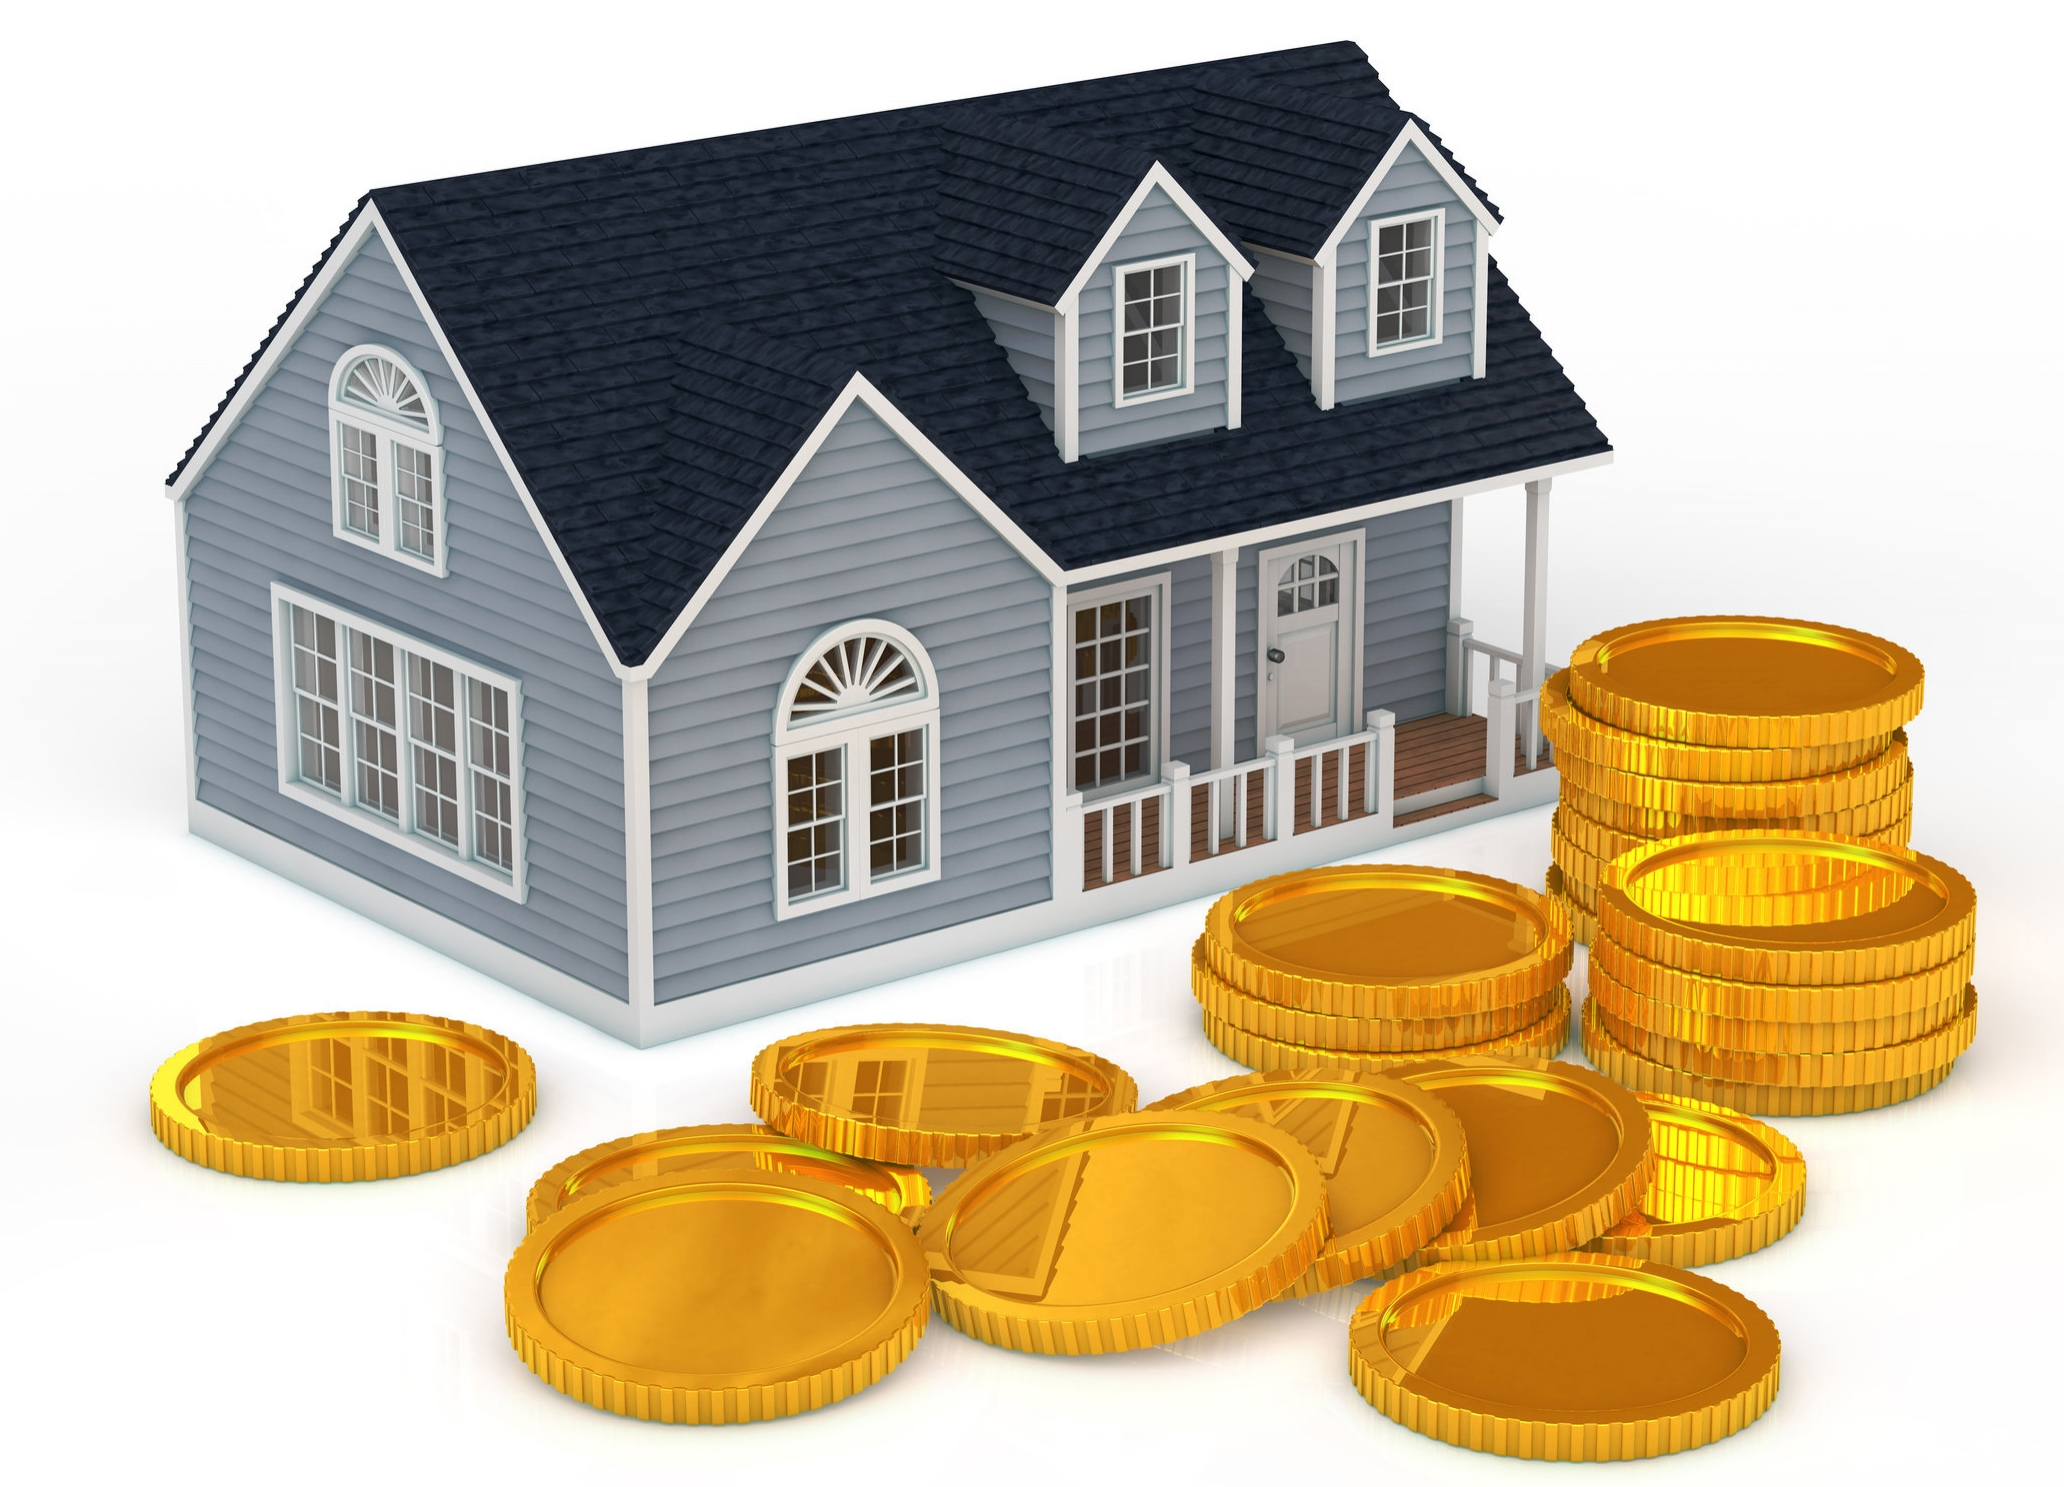 Housing-and-coin-low.jpg